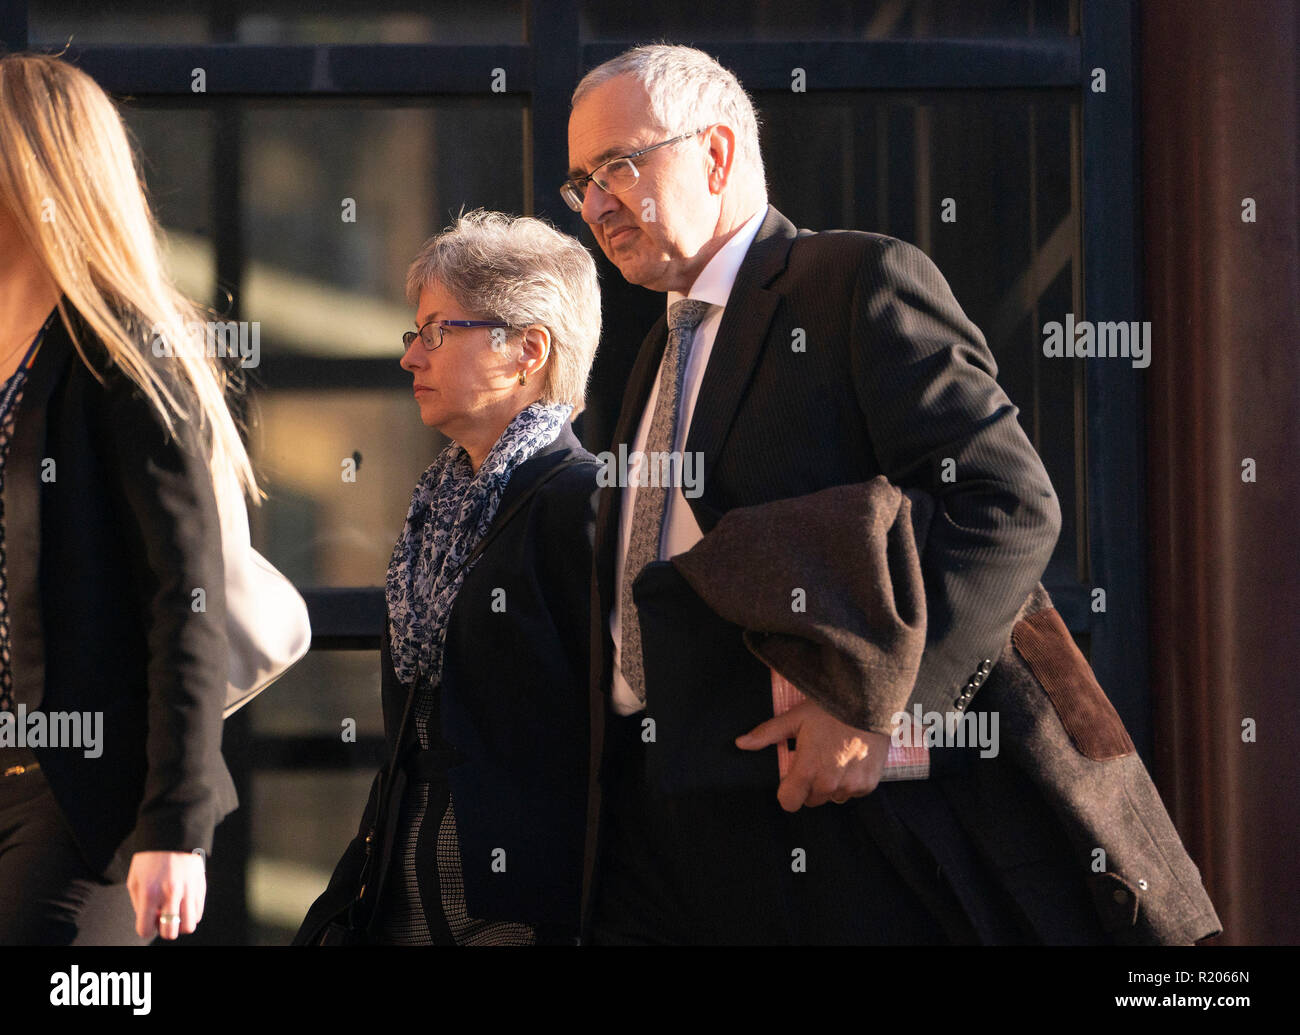 Nigel and Paula Burt, the parents of Durham University student Olivia Burt, who died outside a nightclub, arrive at Newcastle Crown court, as Paul Hind, 38, has been jailed for 14 months after posting offensive messages on Facebook tribute pages to four dead people. - Stock Image